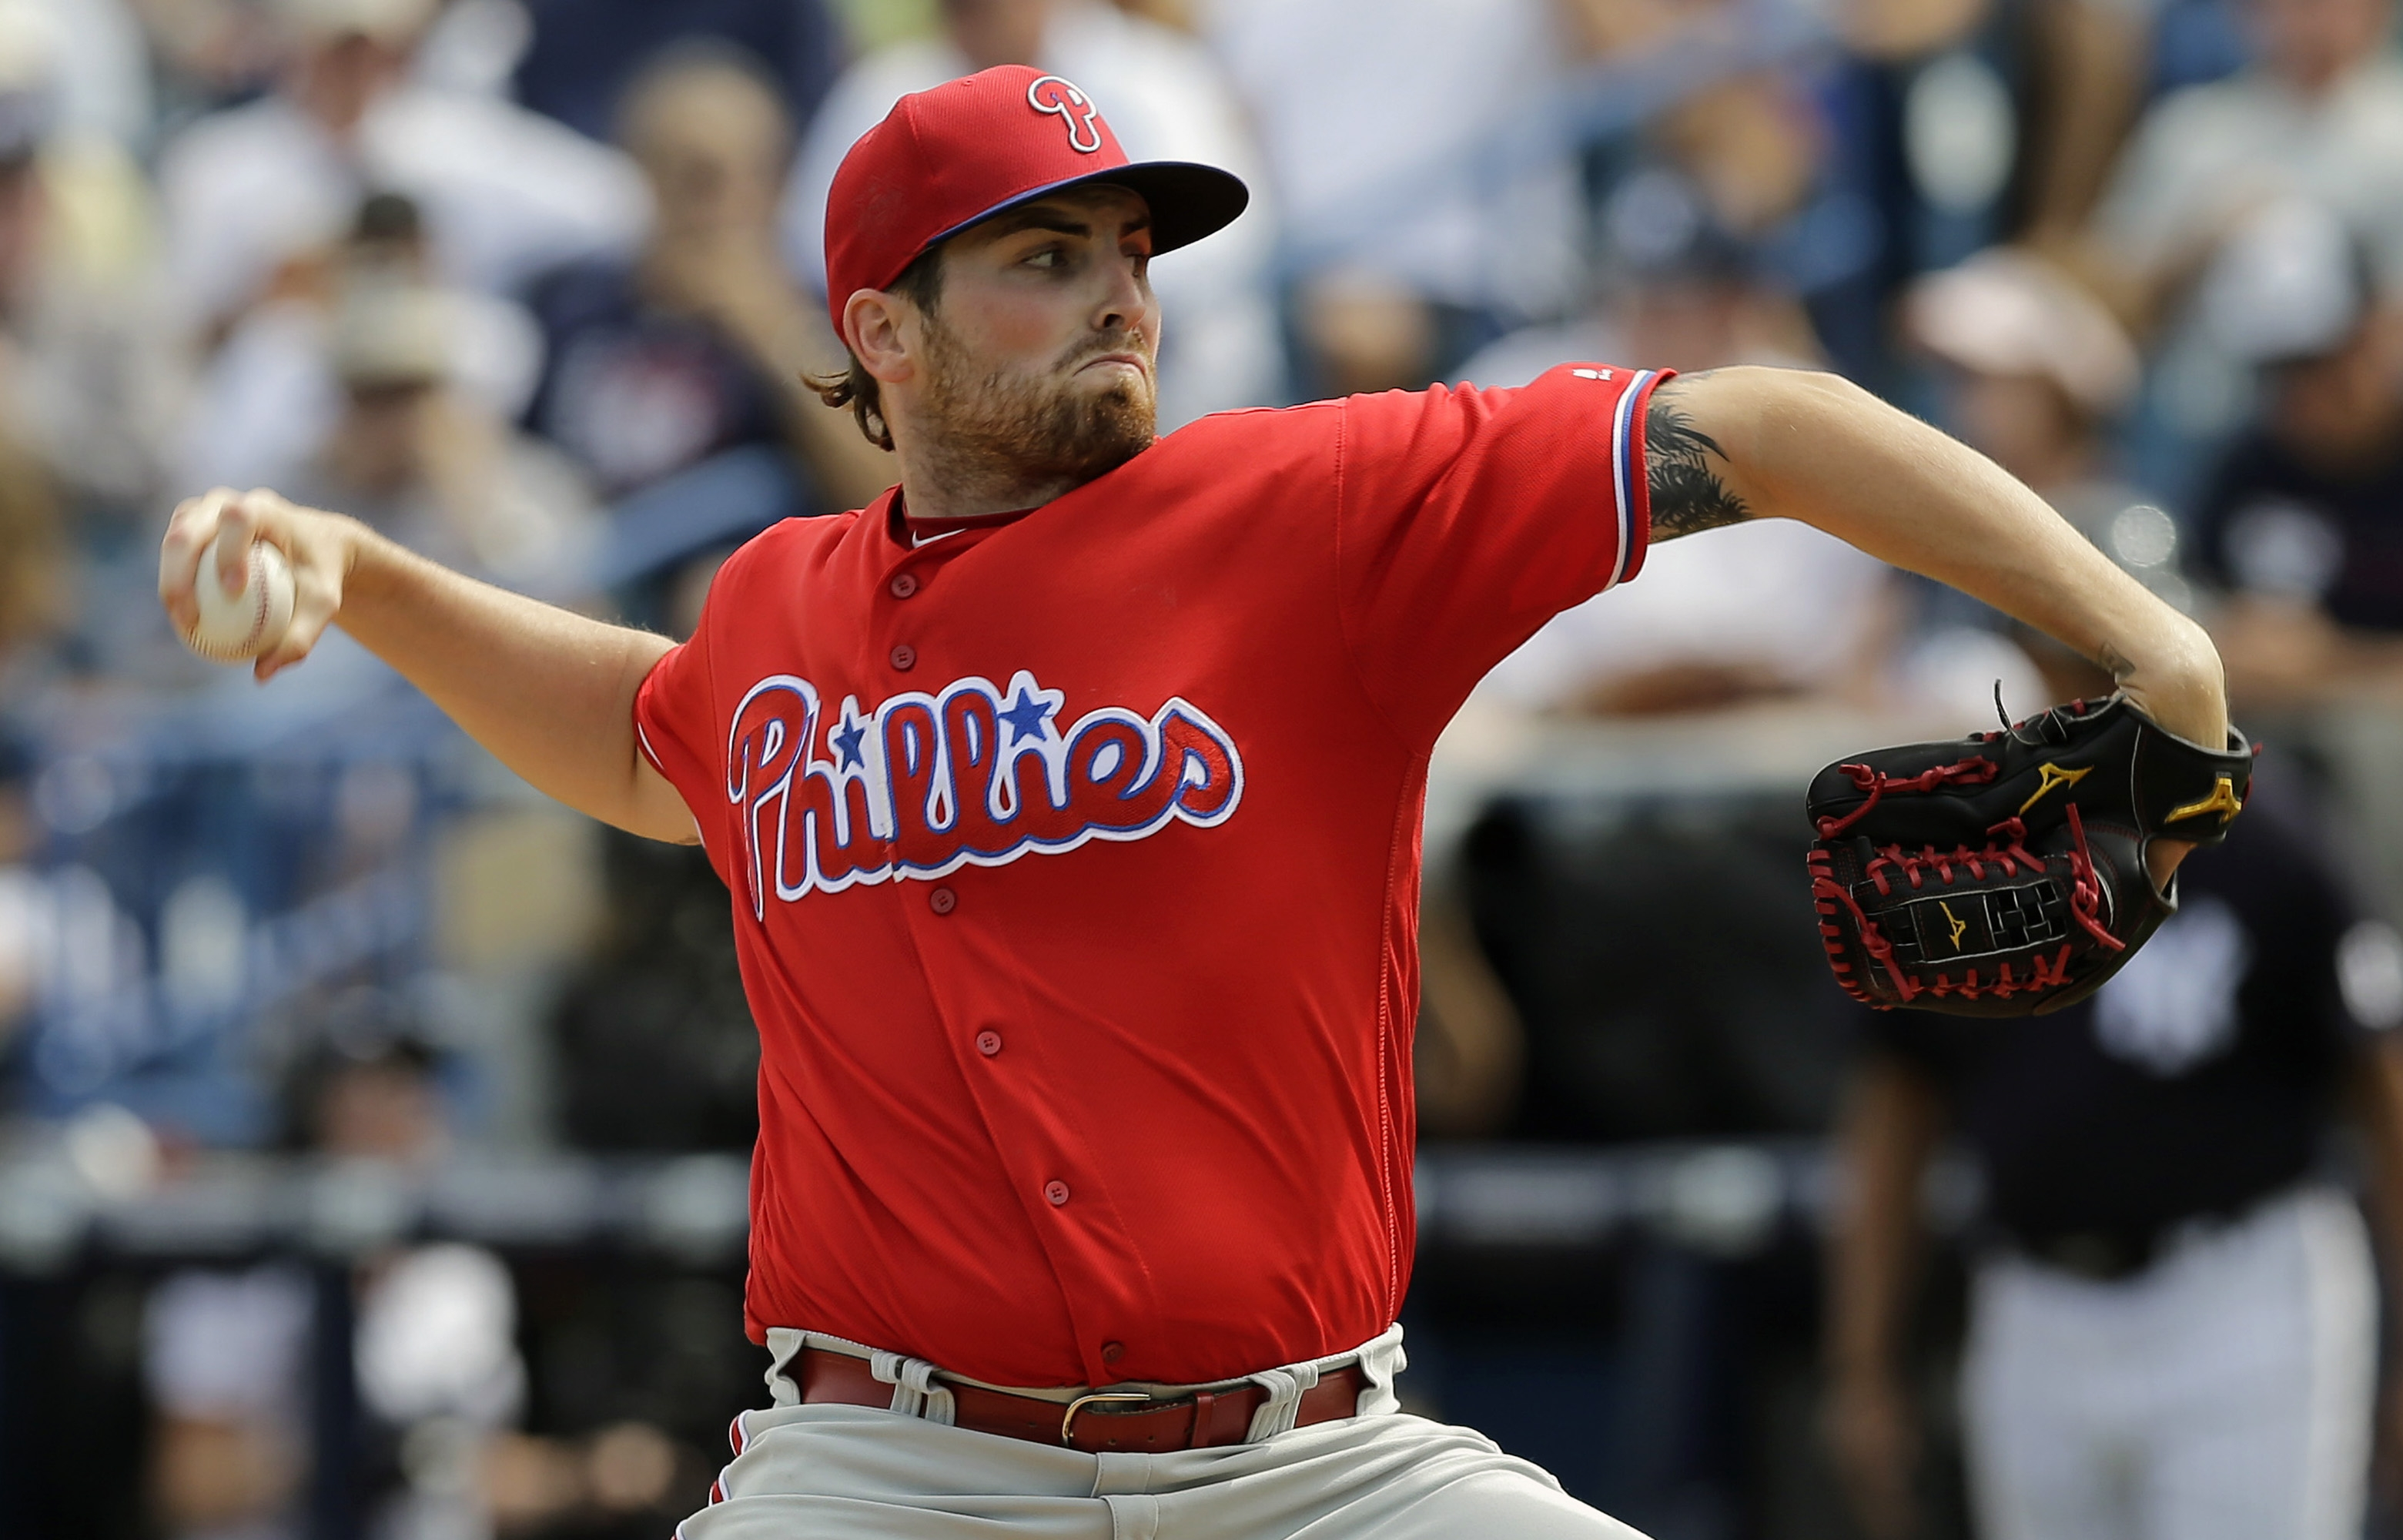 FILE - In this March 3, 2016, file photo, Philadelphia Phillies starting pitcher Alec Asher during the fourth inning of a spring training baseball game against the New York Yankees in Tampa, Fla. Asher was suspended for 80 games for violating Major League